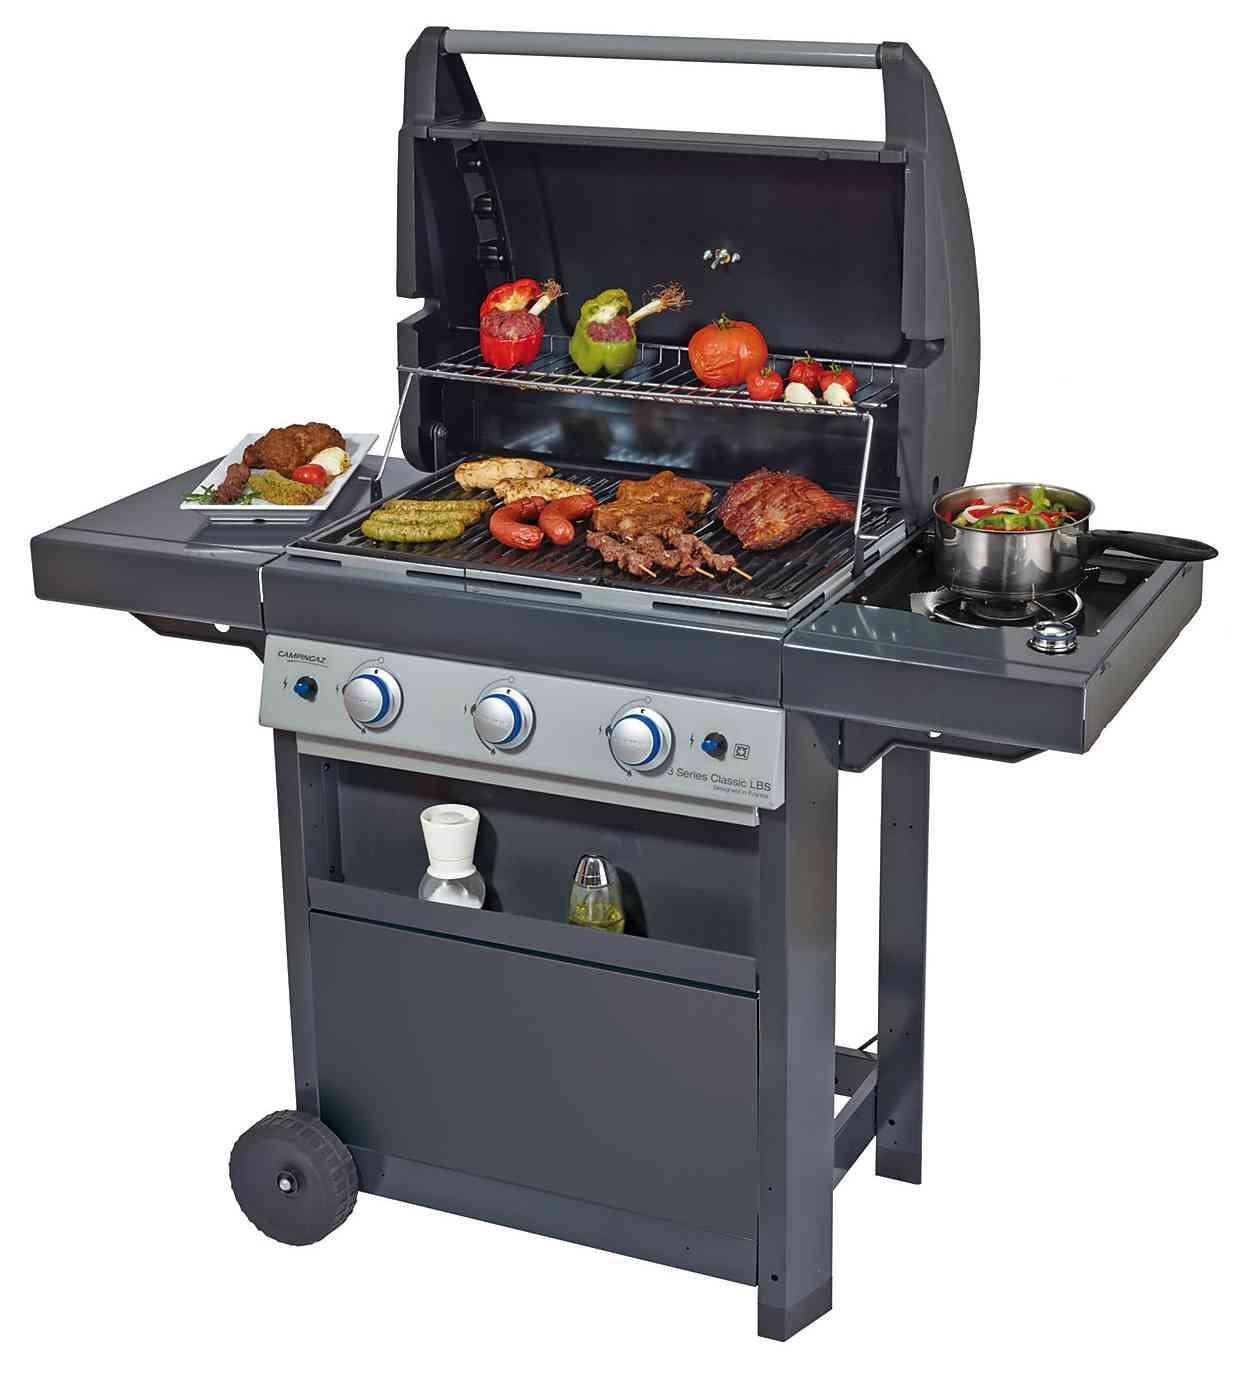 1 PZ Di BARBECUE A GAS '3 SERIES CLASSIC LBS'